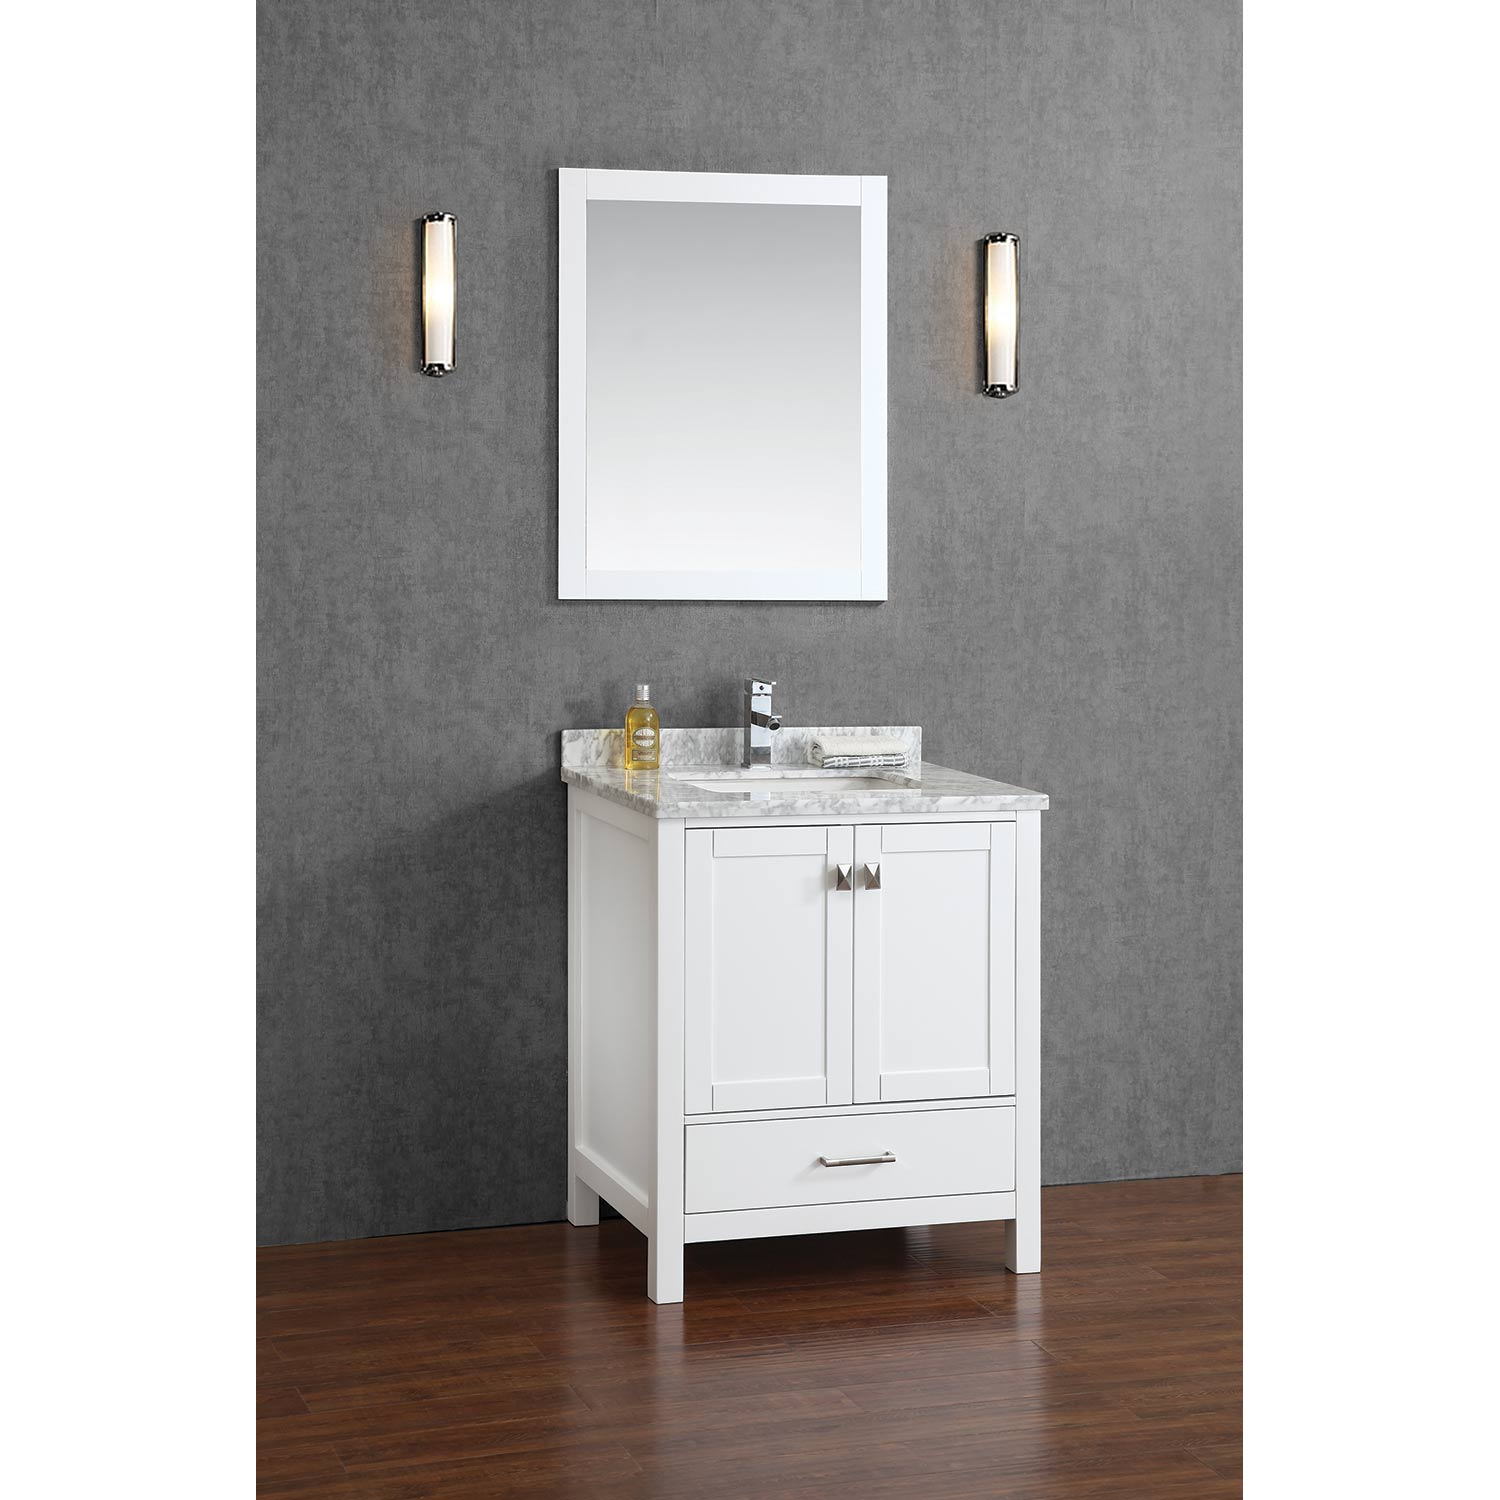 Buy Vincent 30 Inch Solid Wood Double Bathroom Vanity In White Hm 13001 30 Wmsq Wt